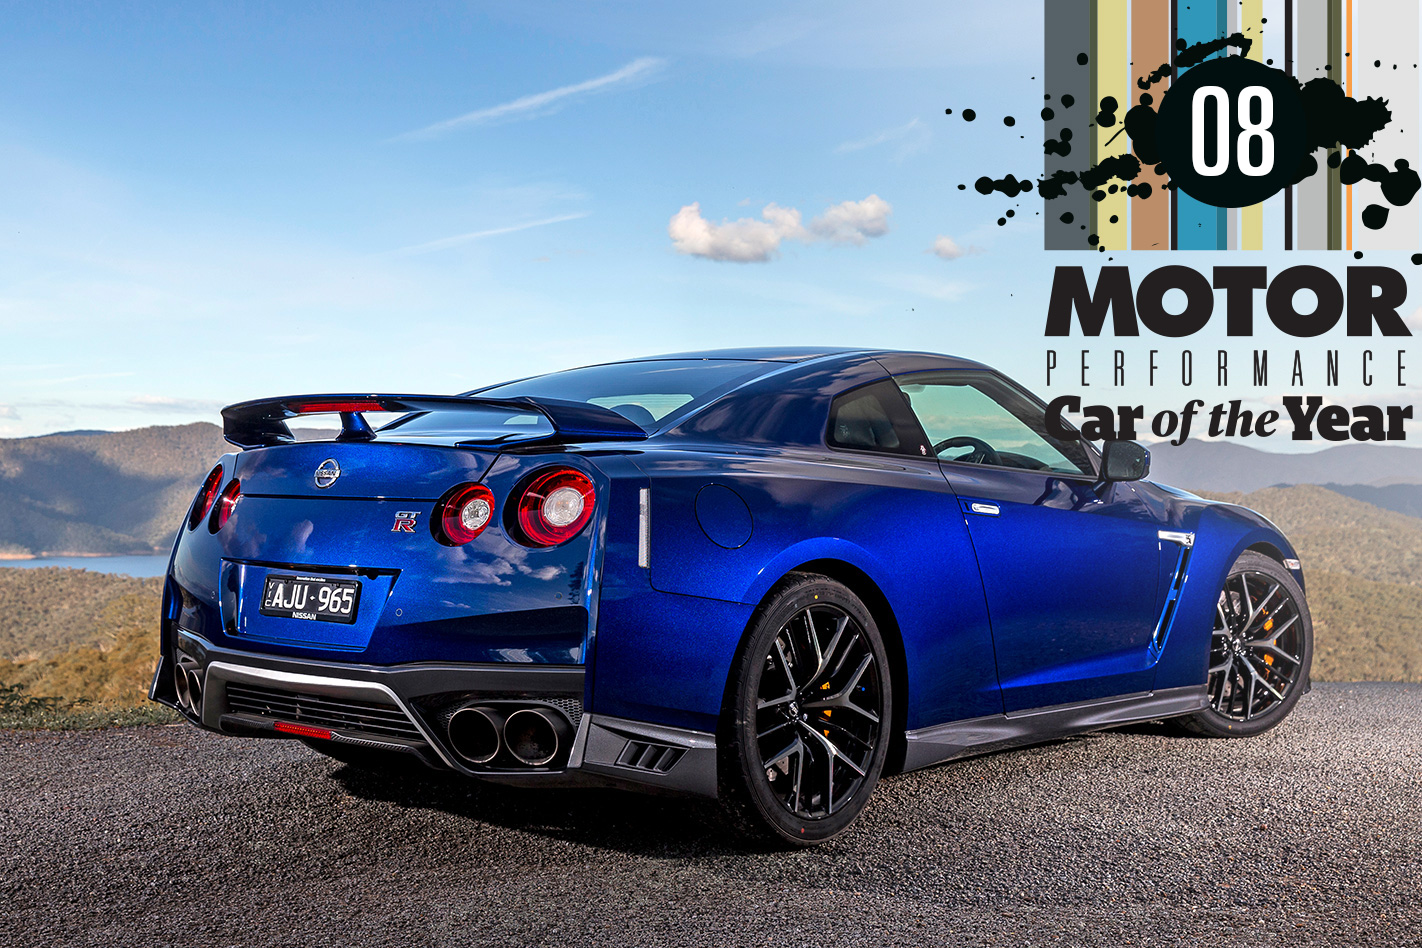 nissan gt-r: performance car of the year 2017 #8